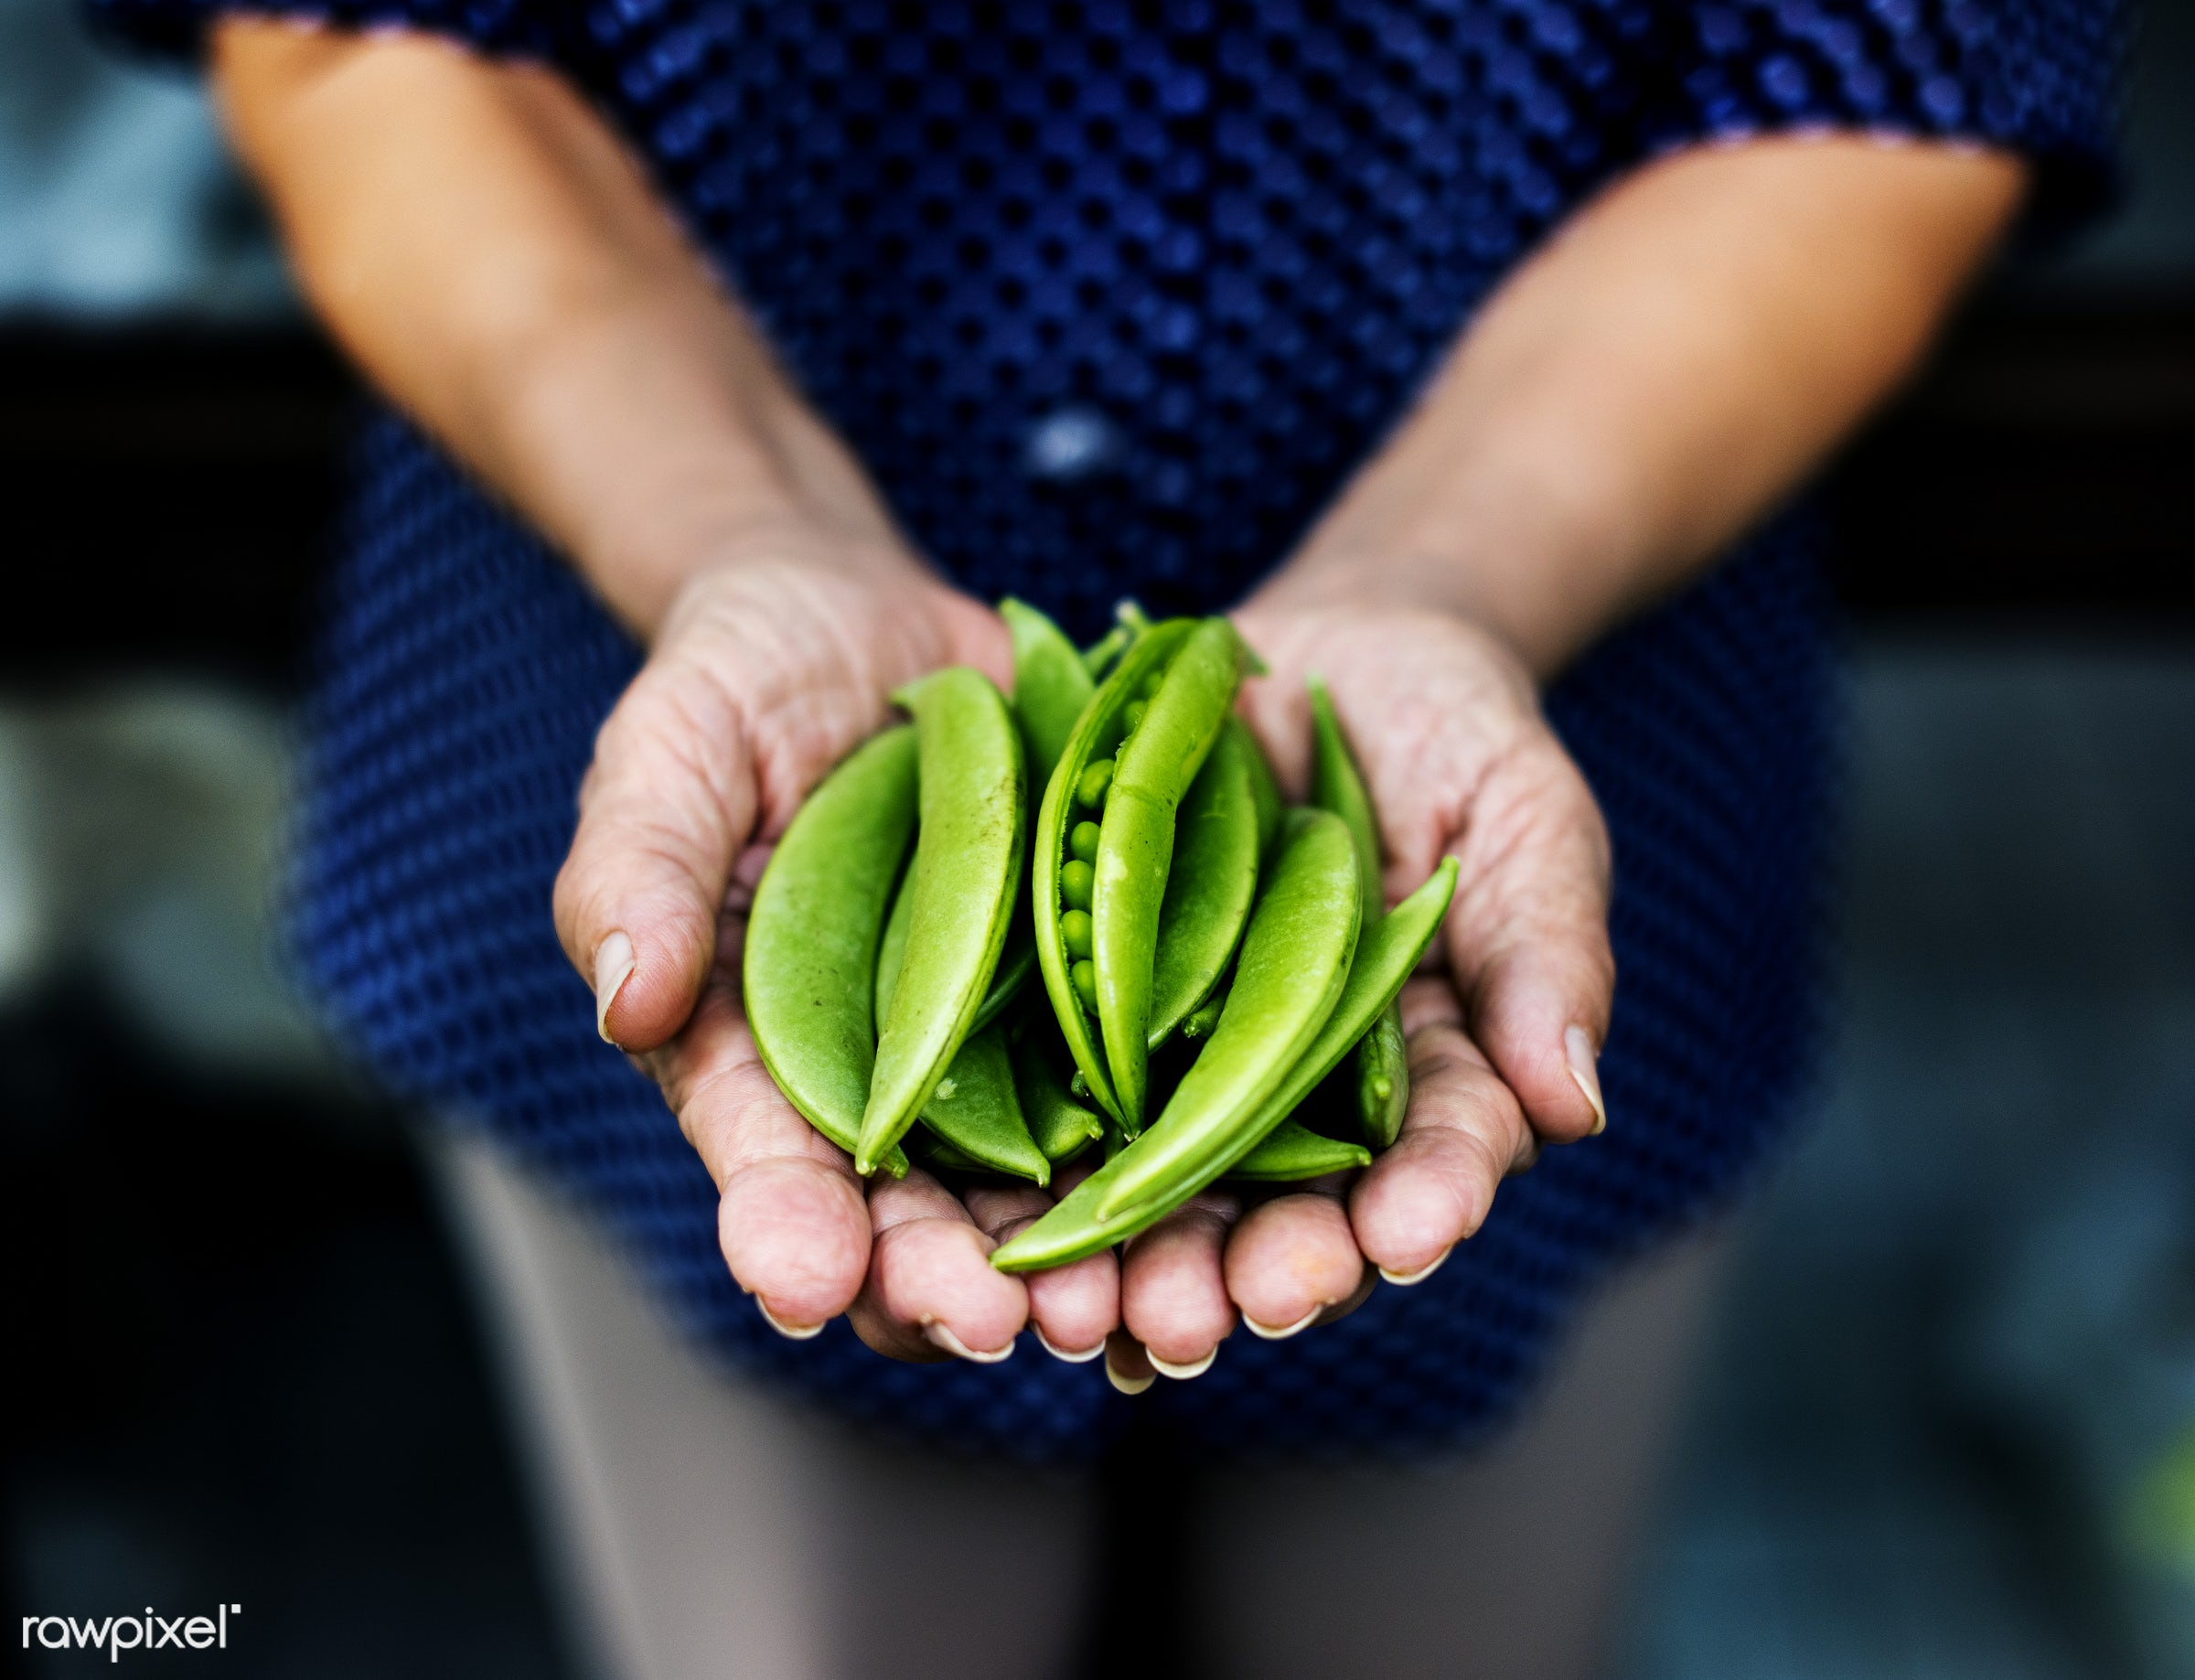 holding, real, hands, fresh, showing, closeup, healthcare, snacks, nutrients, organic, food, green beans, vegetable, peas